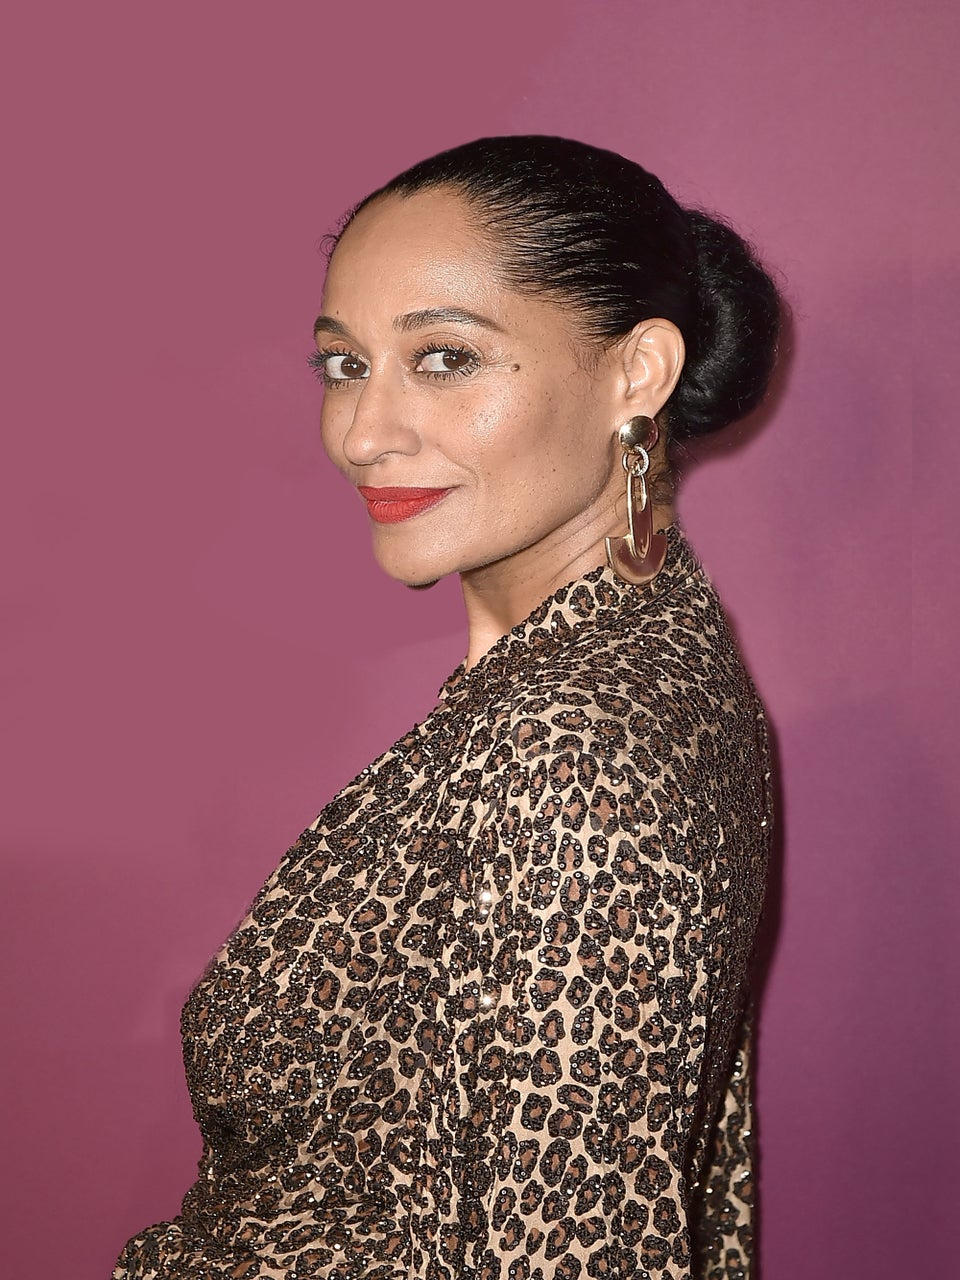 Tracee Ellis Ross Waxes Her Nostrils, Shares the Painful Video on Instagram: 'Just Say No!'